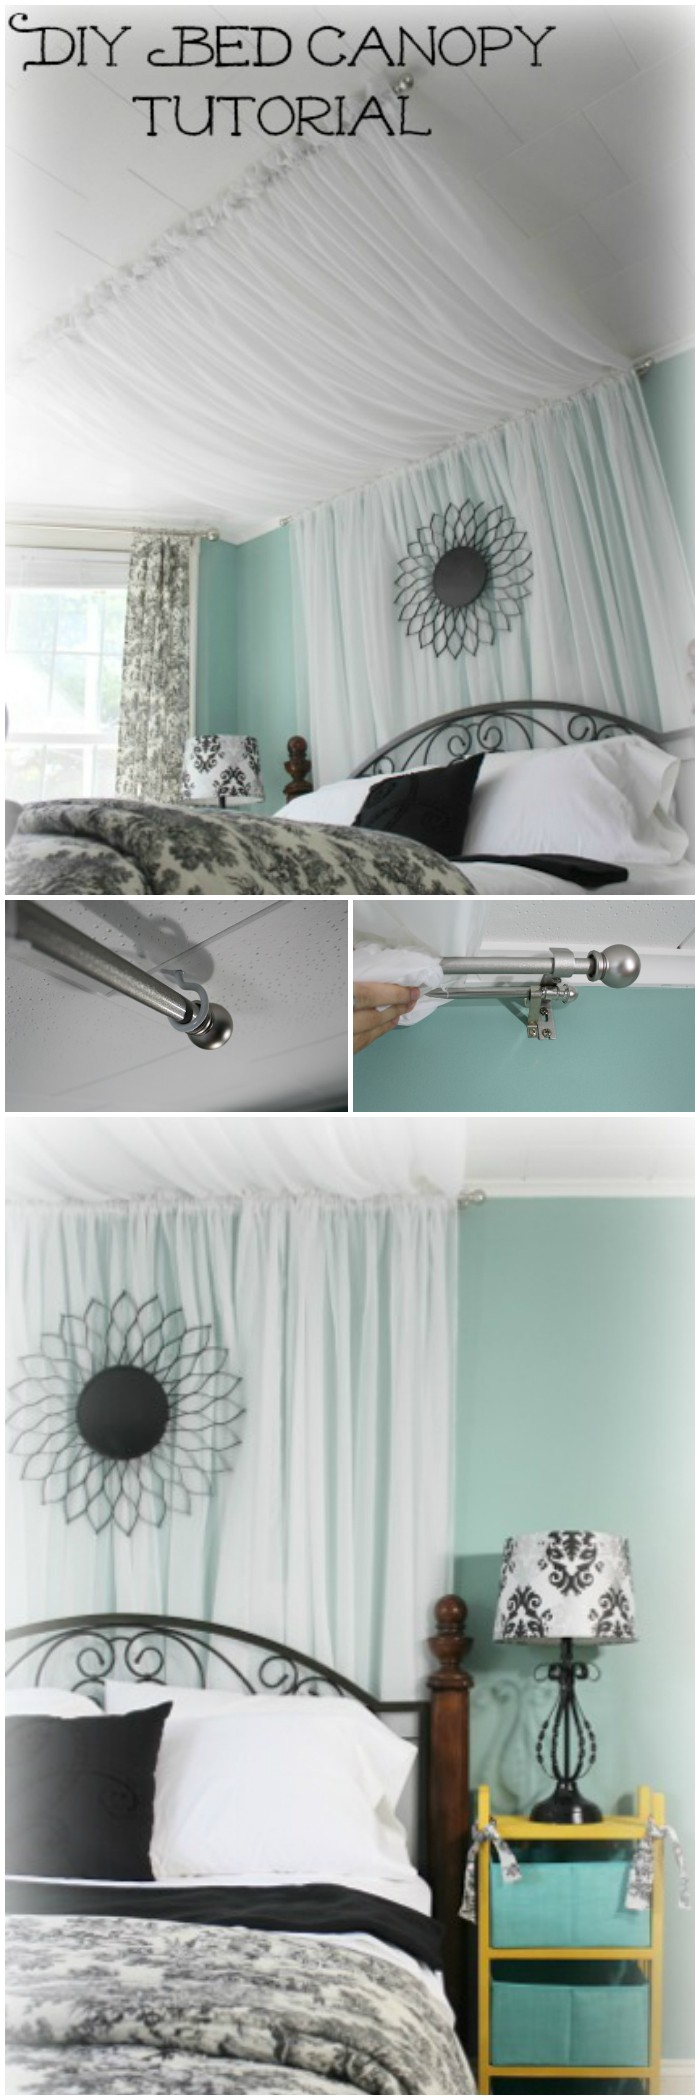 DIY Bed Canopy Ideas Without Spending A Lot DIY bed canopy curtains